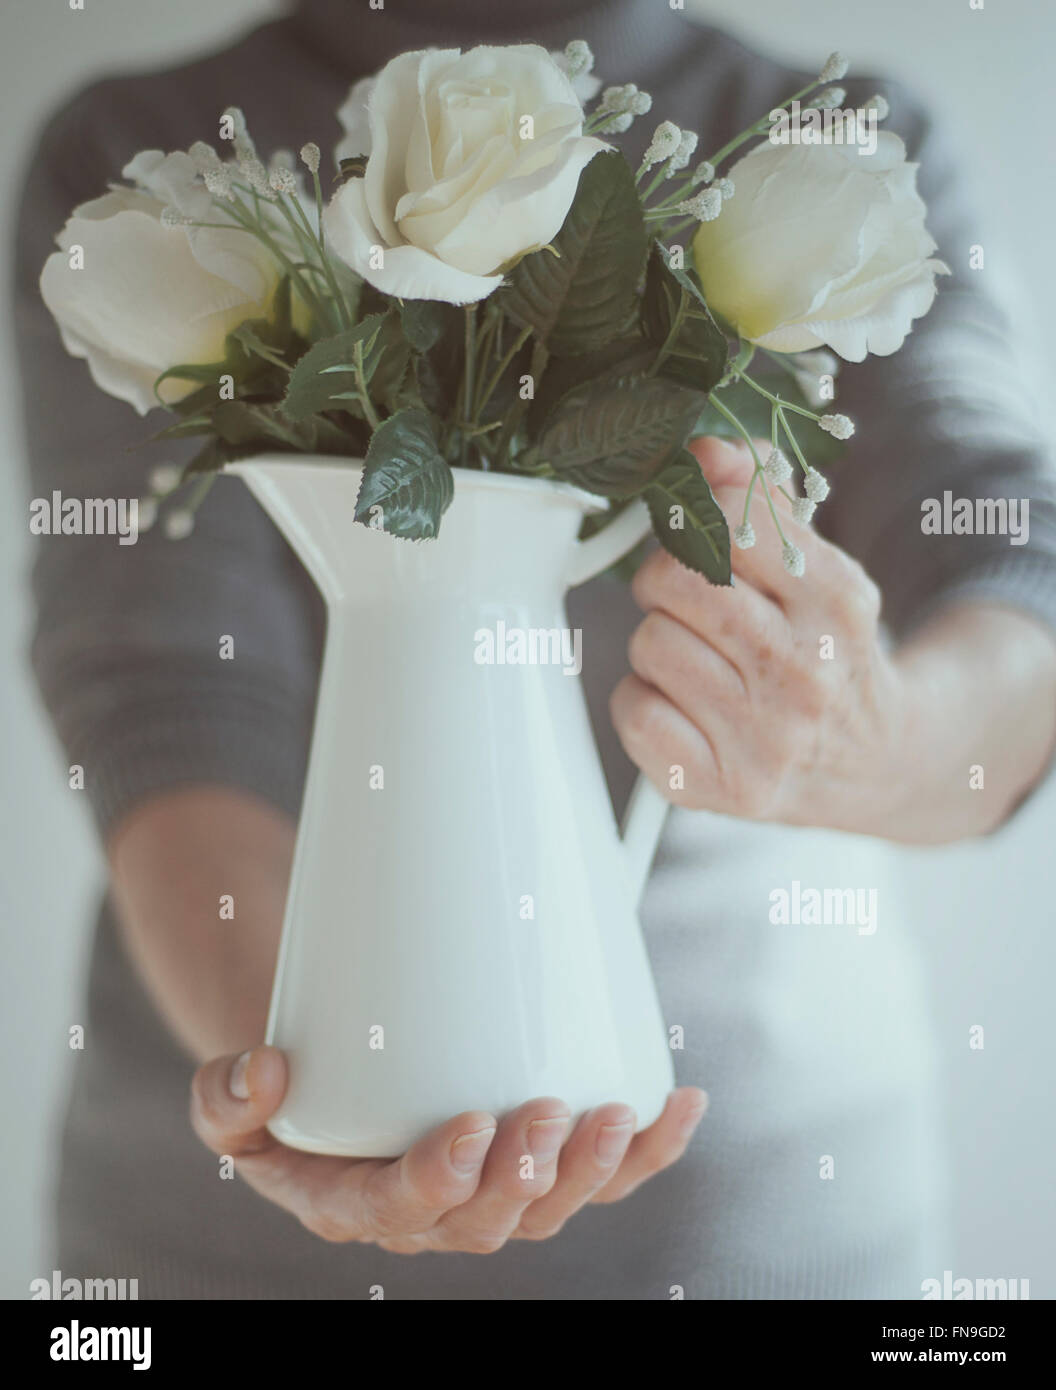 Senior man holding a jug of flowers Stock Photo